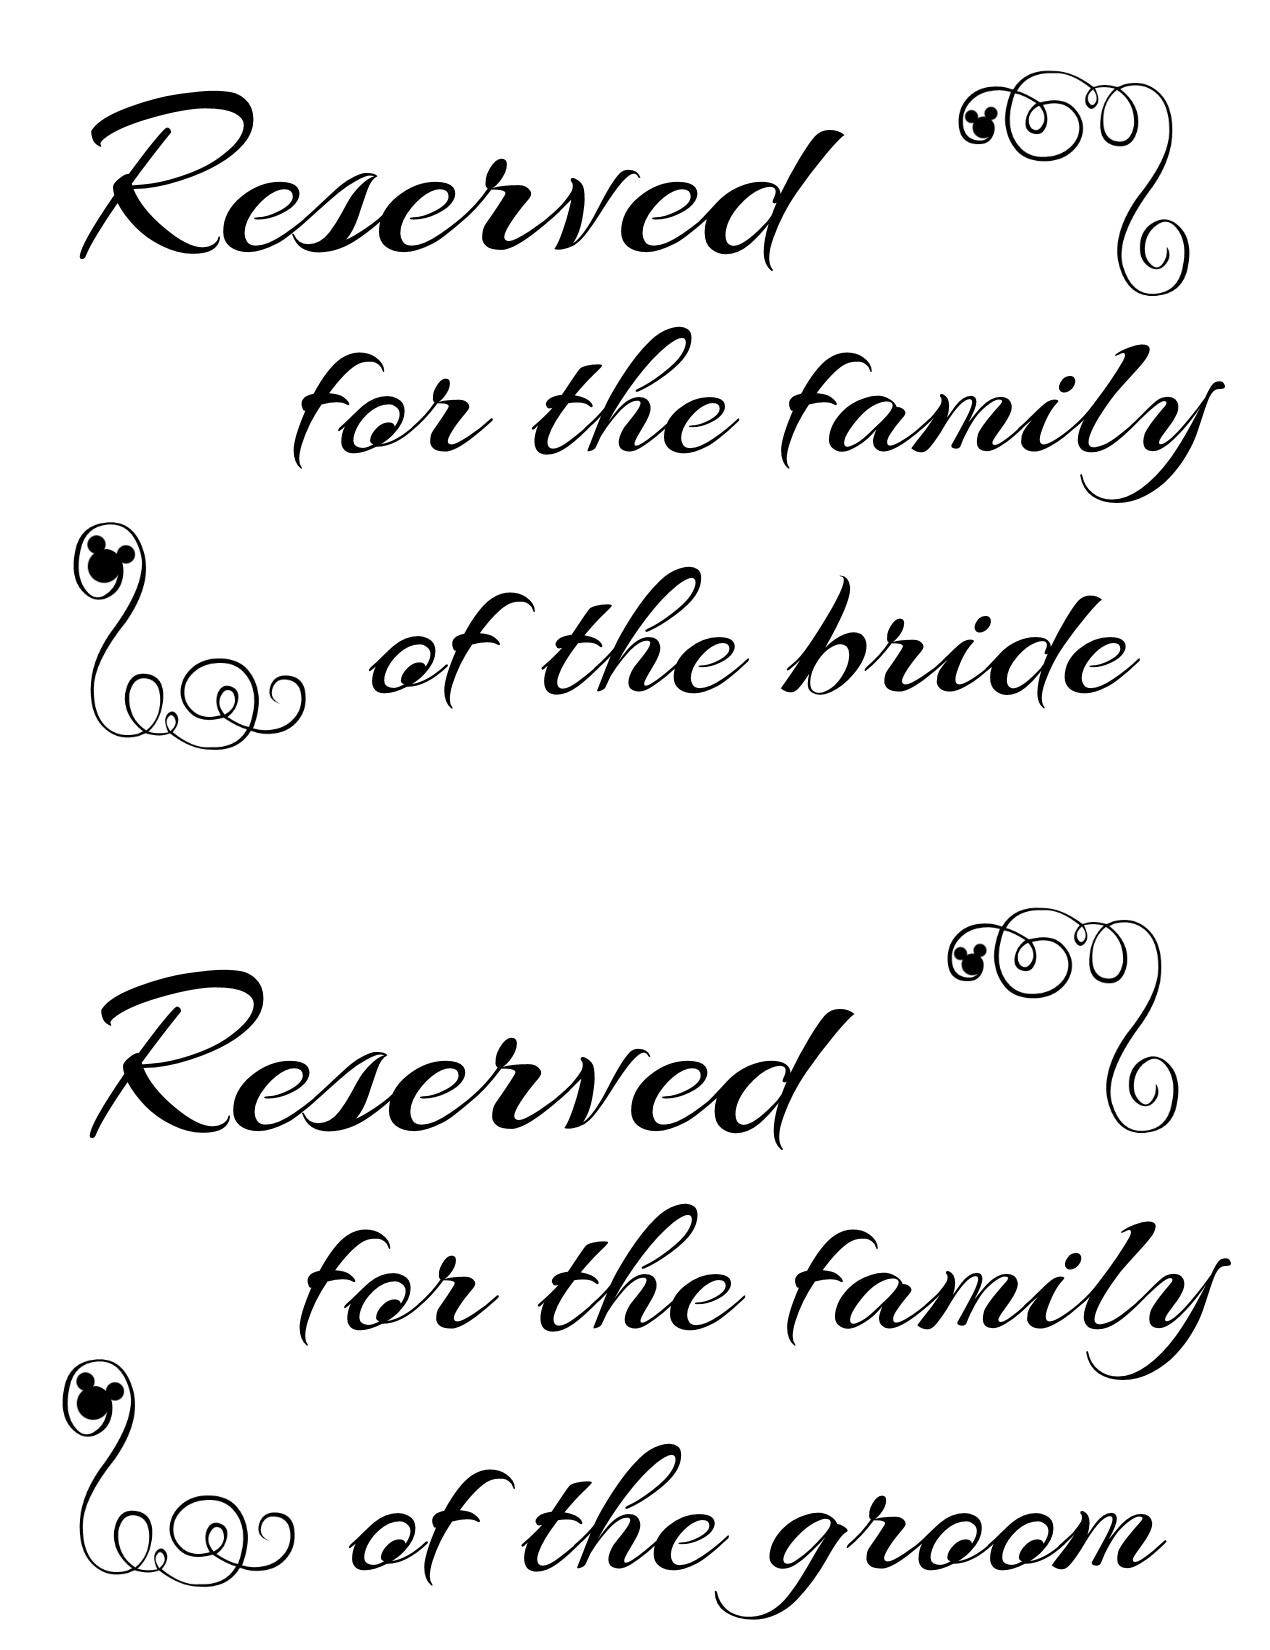 image regarding Reserved Sign Printable identified as Free of charge Printable Reserved Seating Indicators for Your Marriage Rite